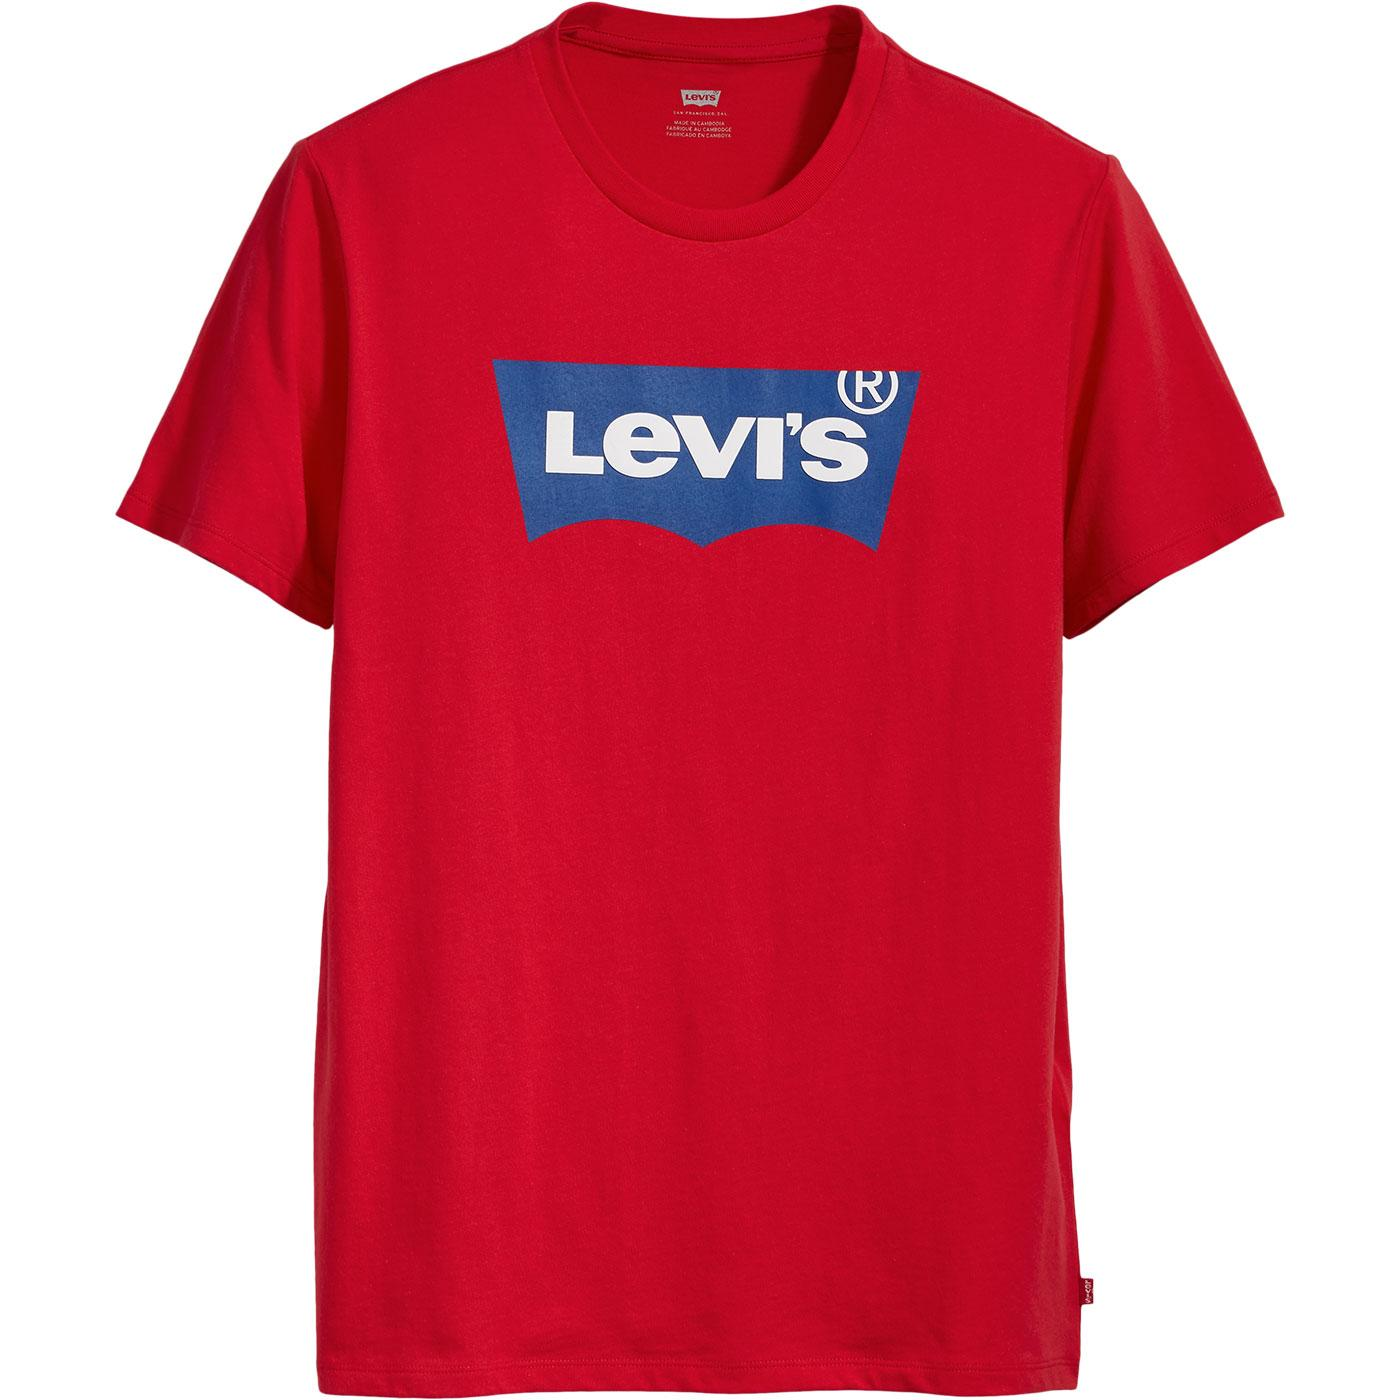 LEVI'S Mens Retro Housemark Batwing Logo Tee (Red)